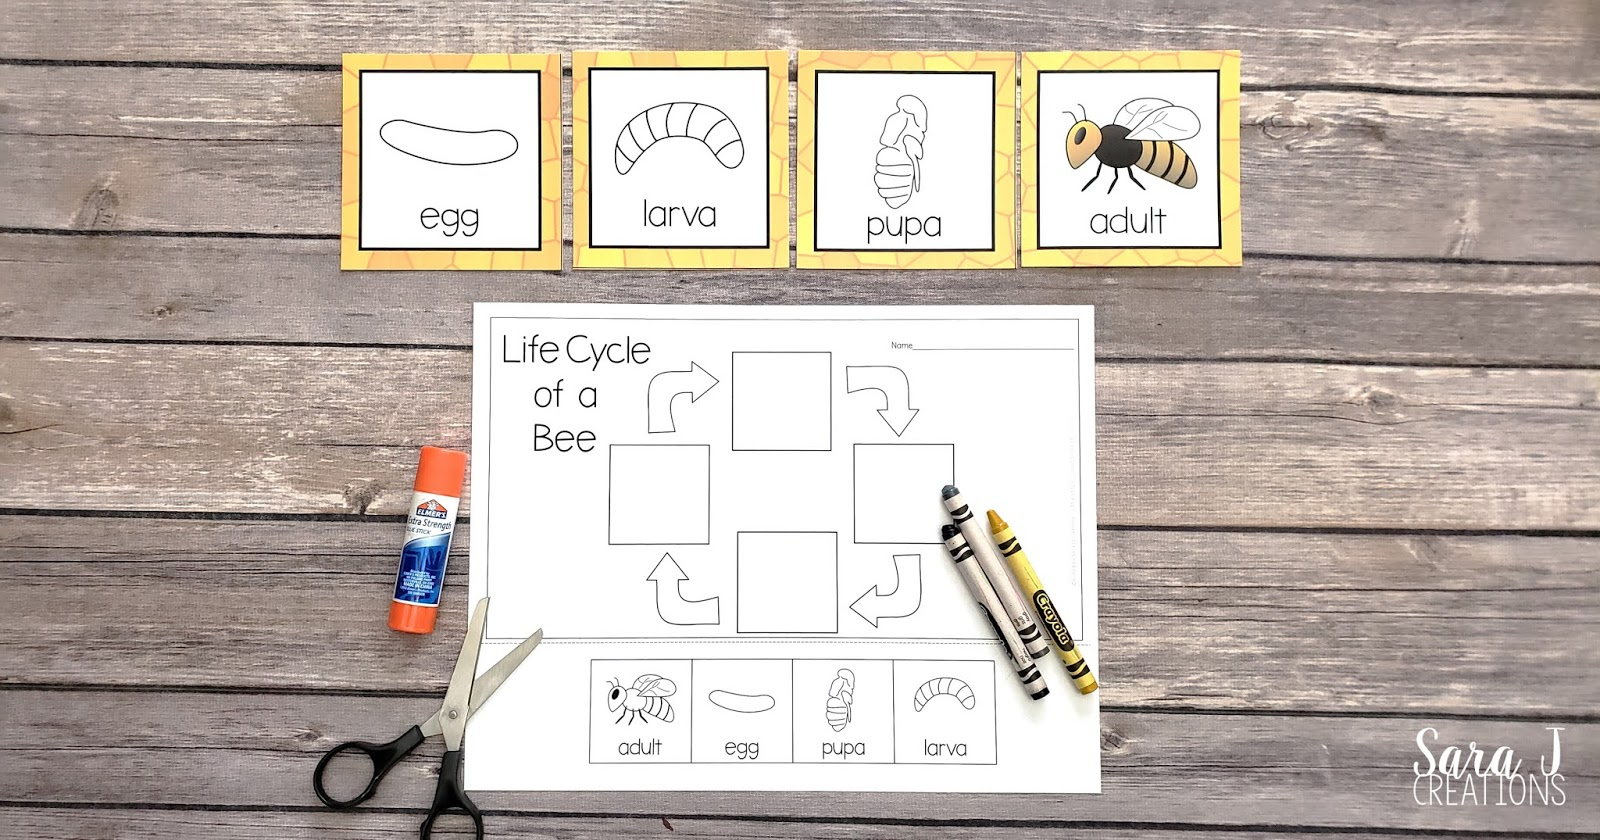 Learn about the life cycle of a bee with these free printables! Practice sequencing the life cycle with these cards and then complete a cut and glue activity.